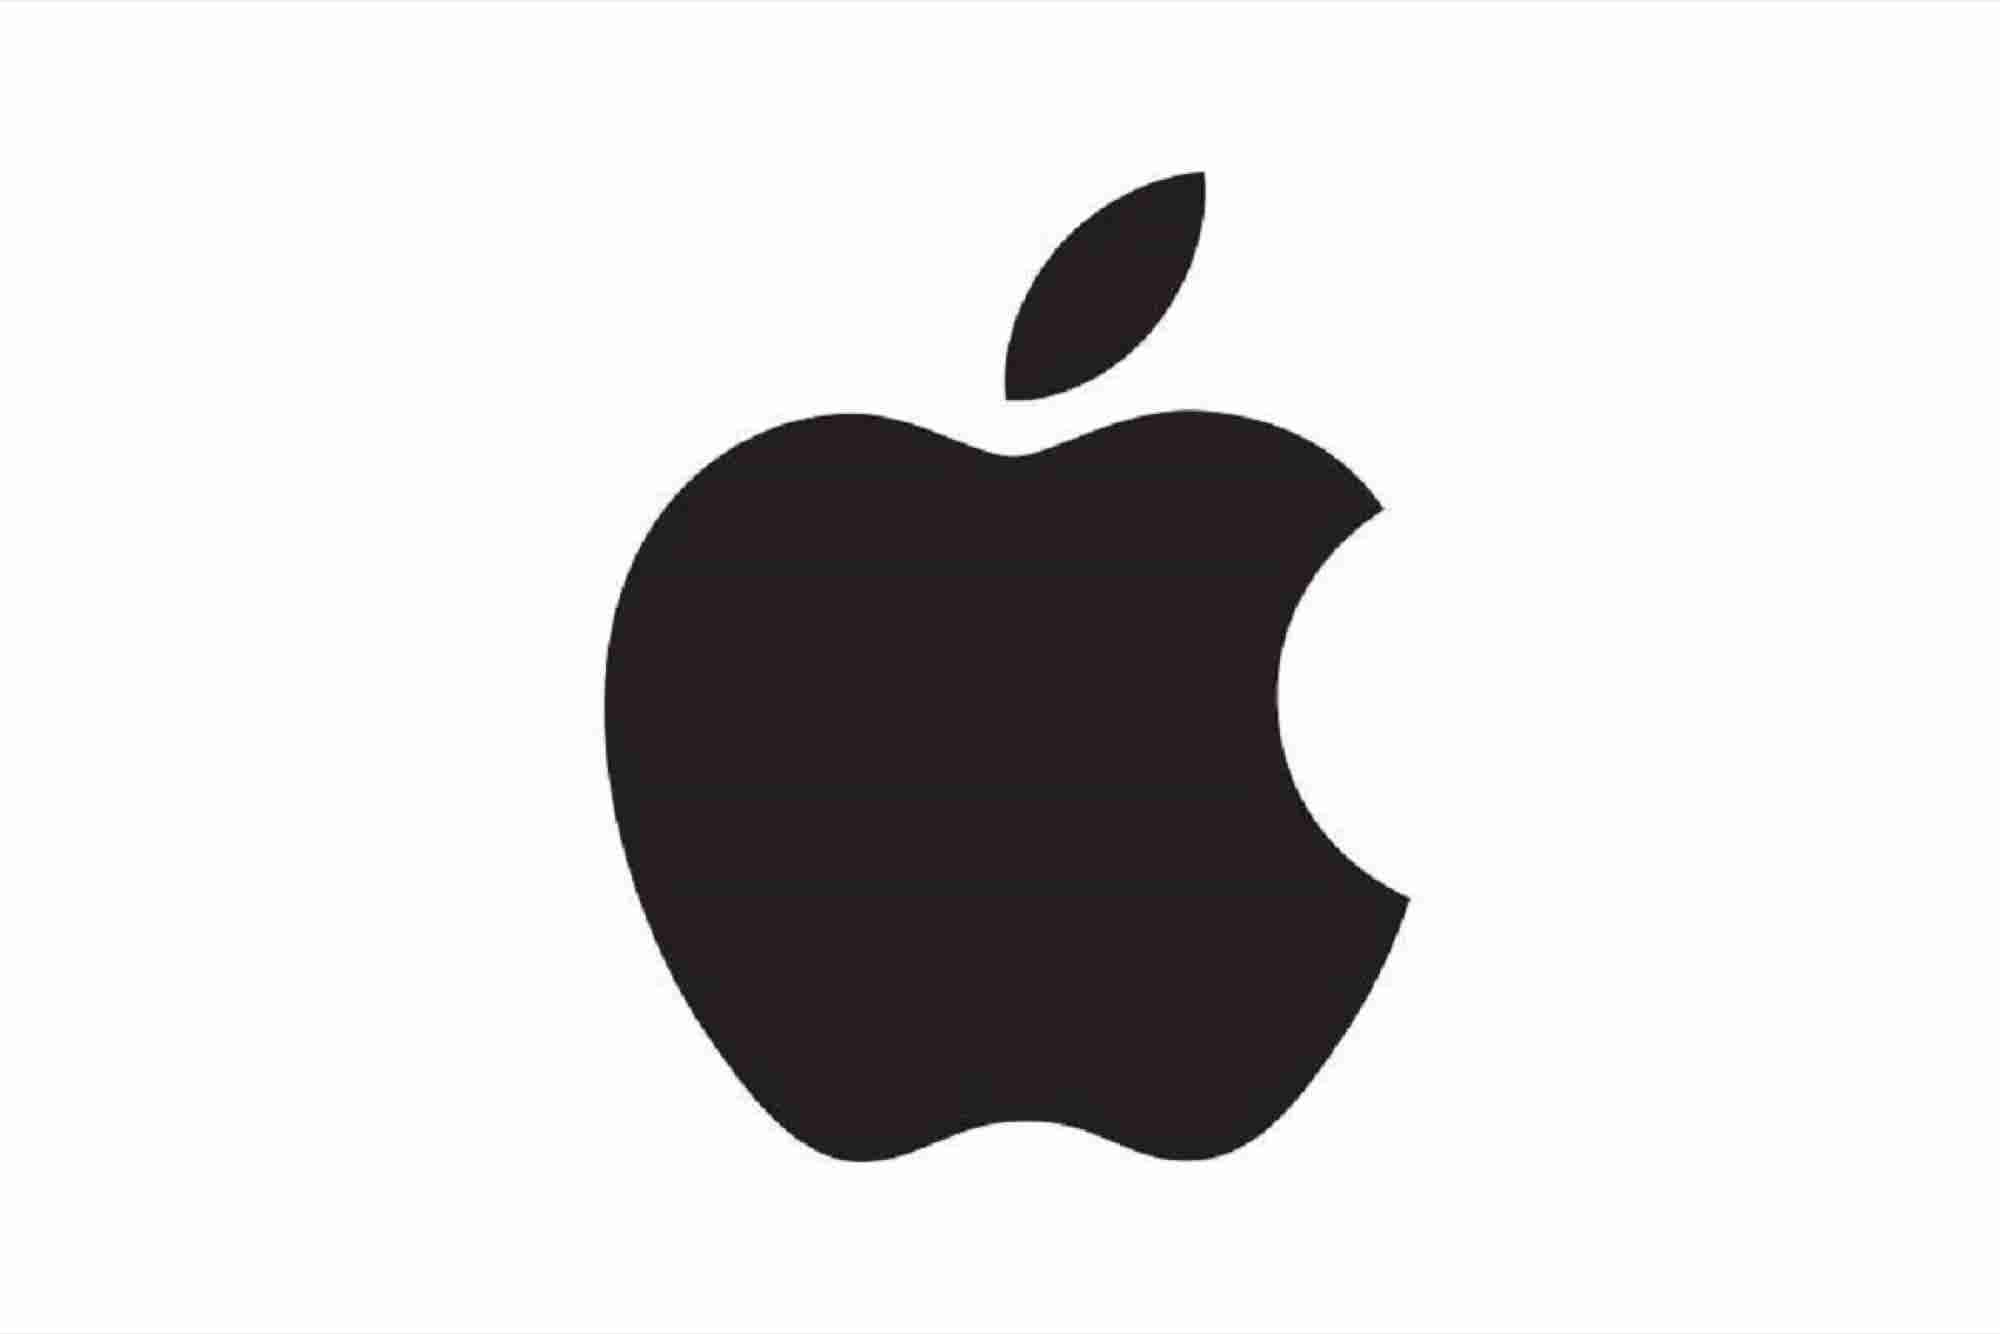 Apple's New Memoji and Tech Mahindra CEO's Comment on IT Grads. 4 Things to Know Today